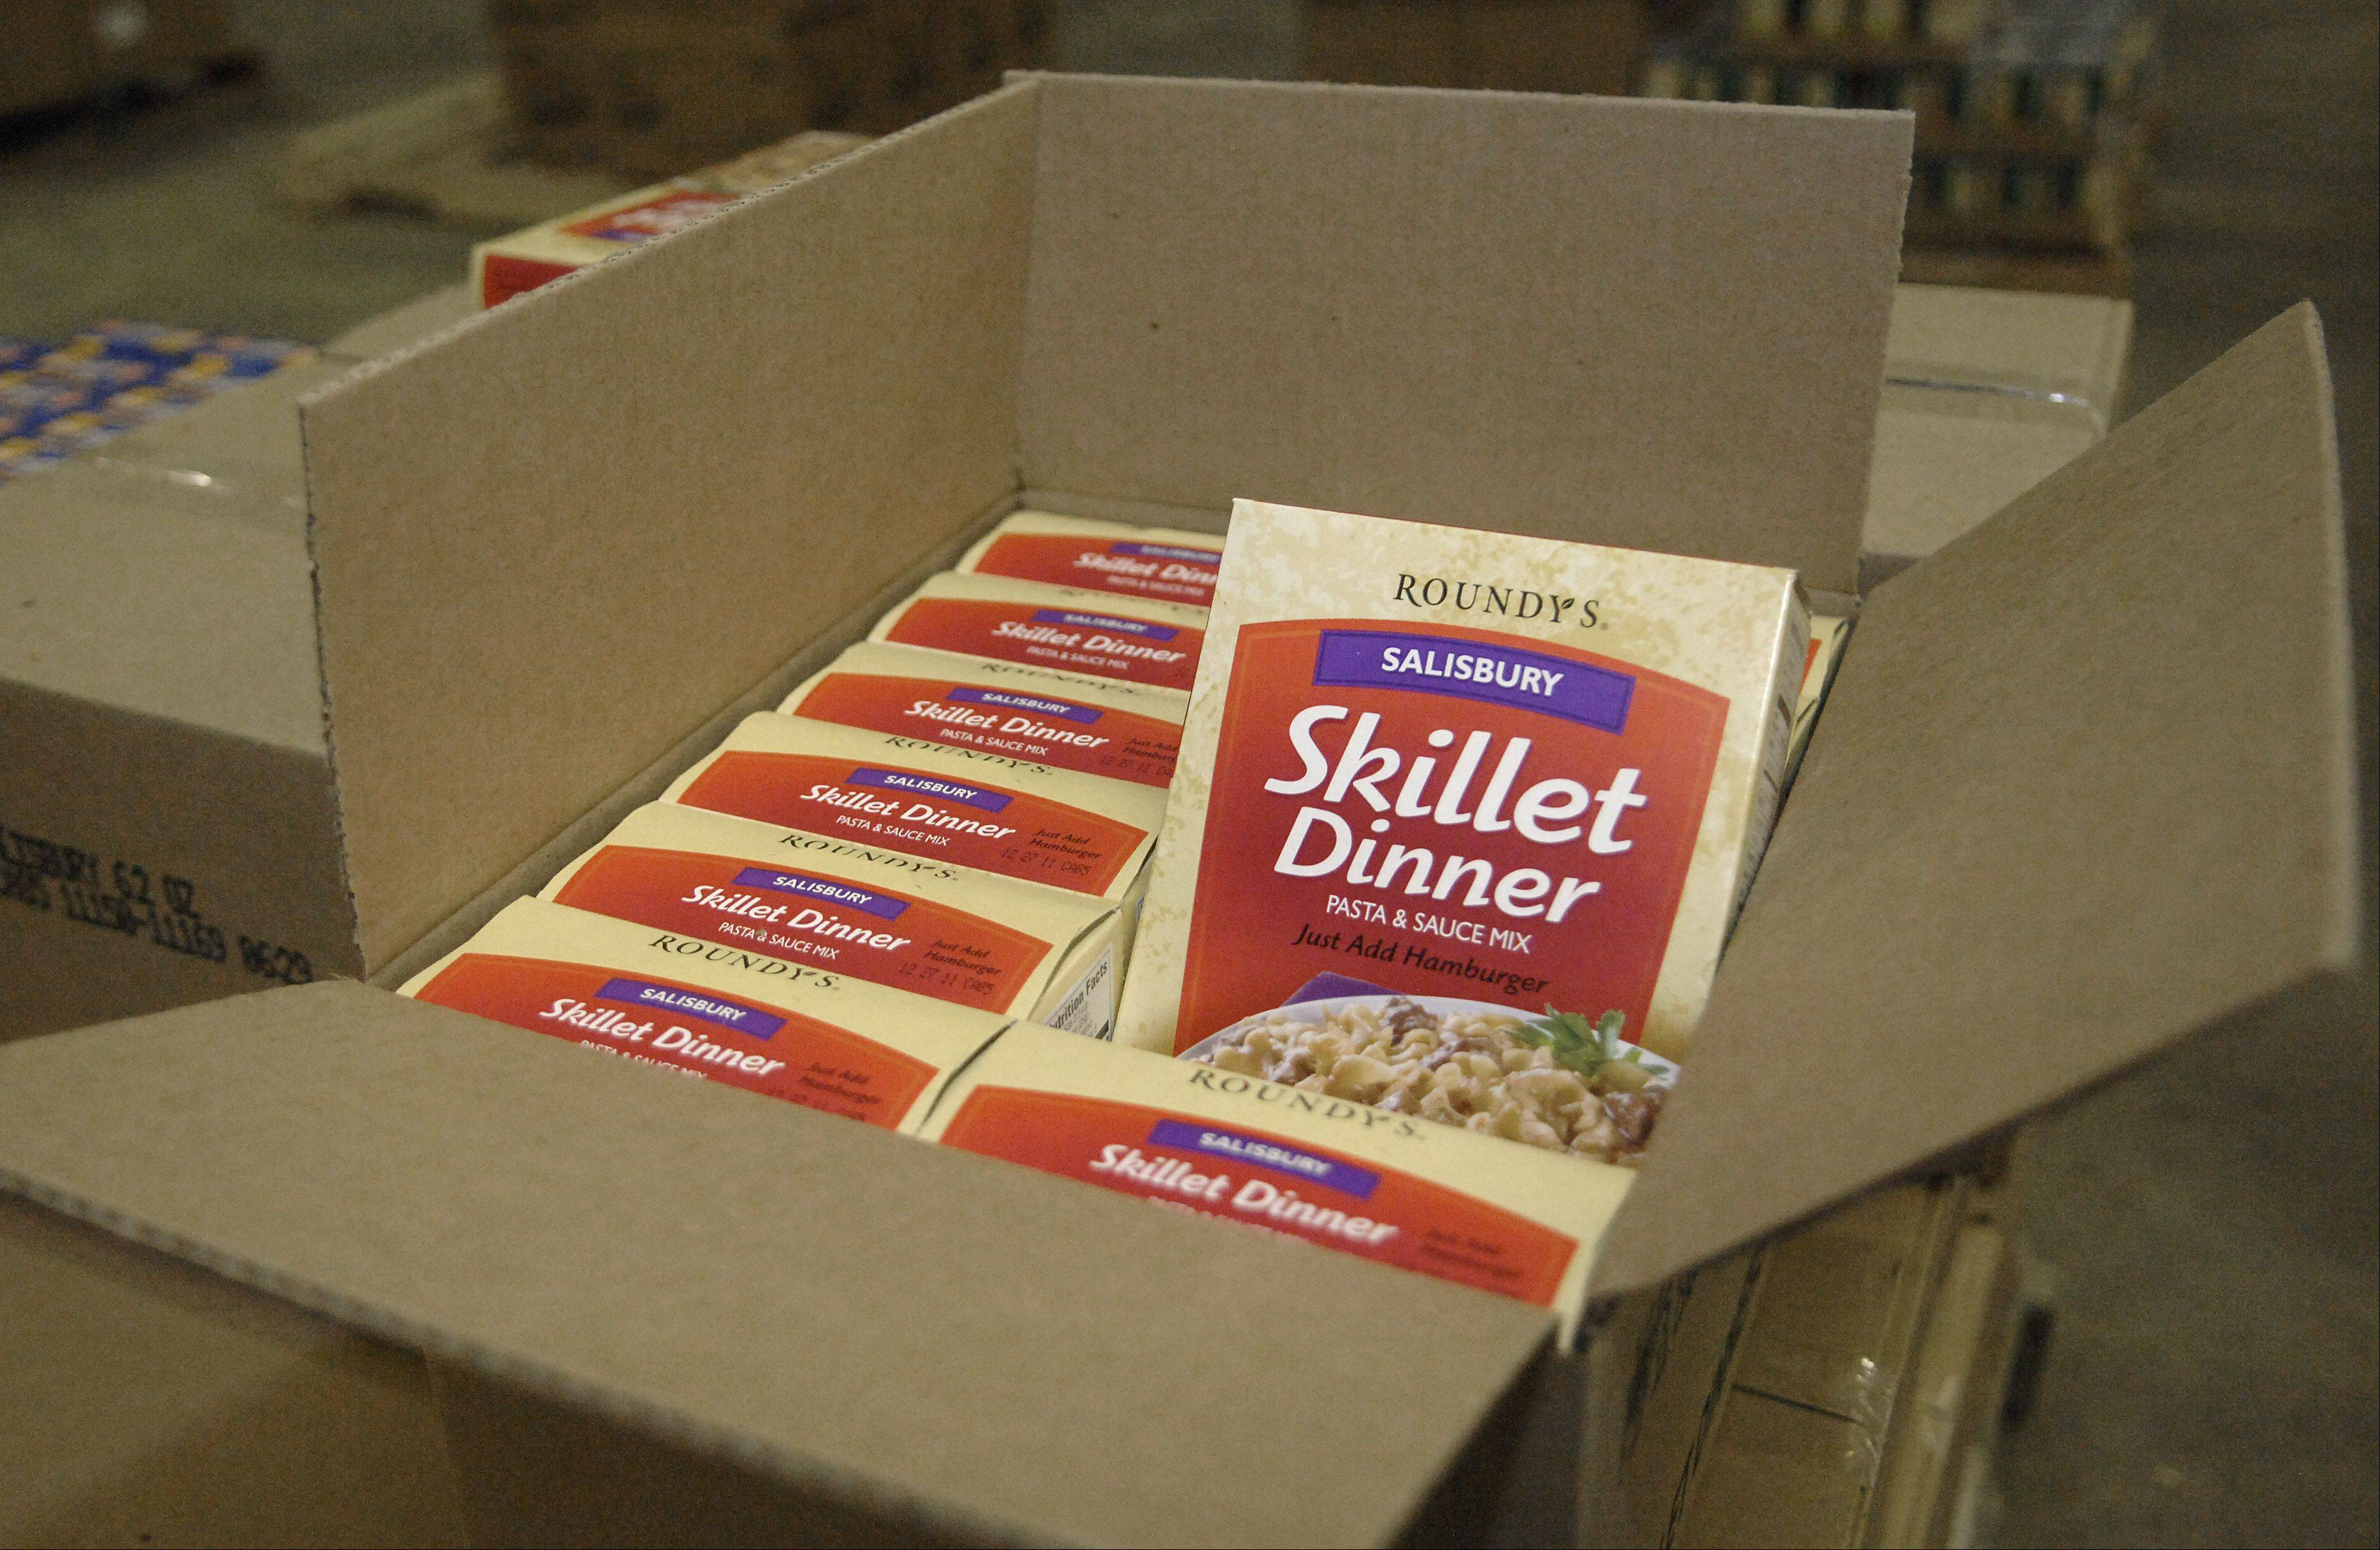 Boxes of food sit neatly displayed in the new warehouse of Feeding Greater Elgin, a nonprofit dedicated to addressing hunger in Elgin and South Elgin, where more than 11,000 people live in poverty.